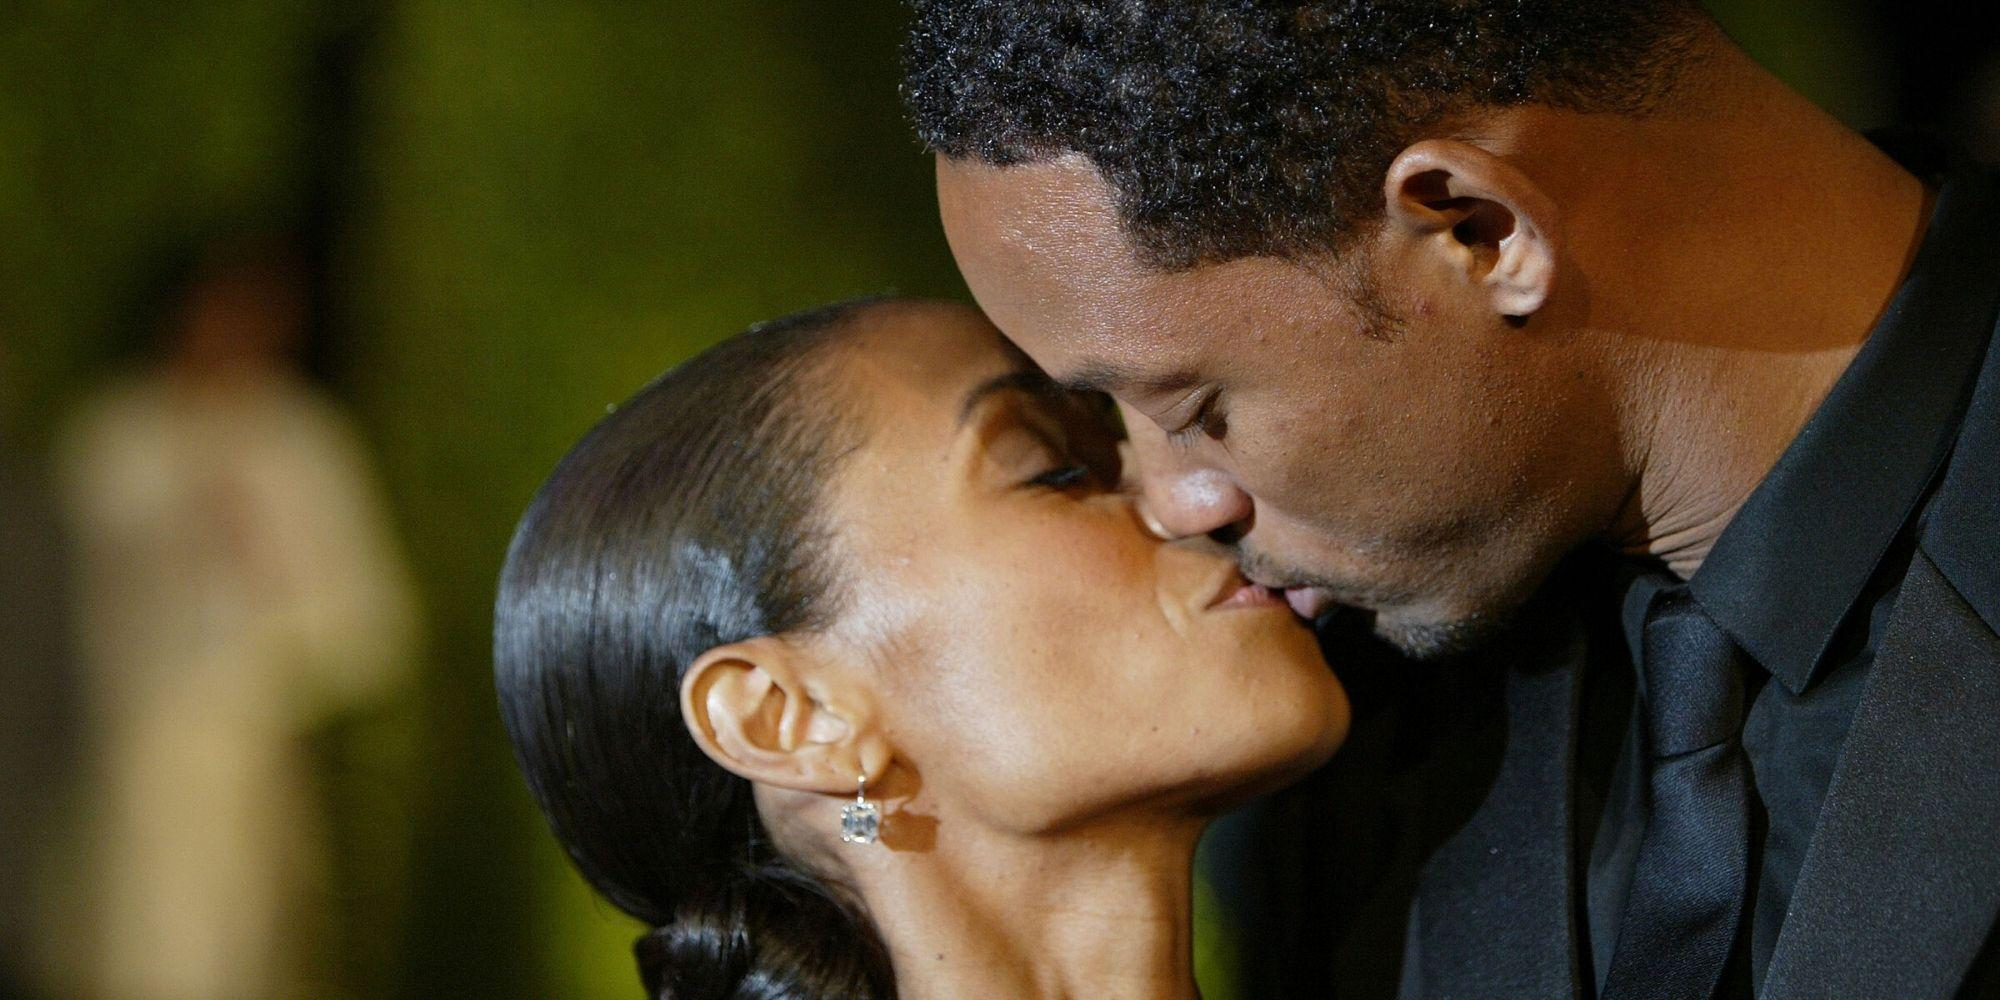 The only thing wrong with Jada Pinkett Smith's 'affair' is our reaction to it